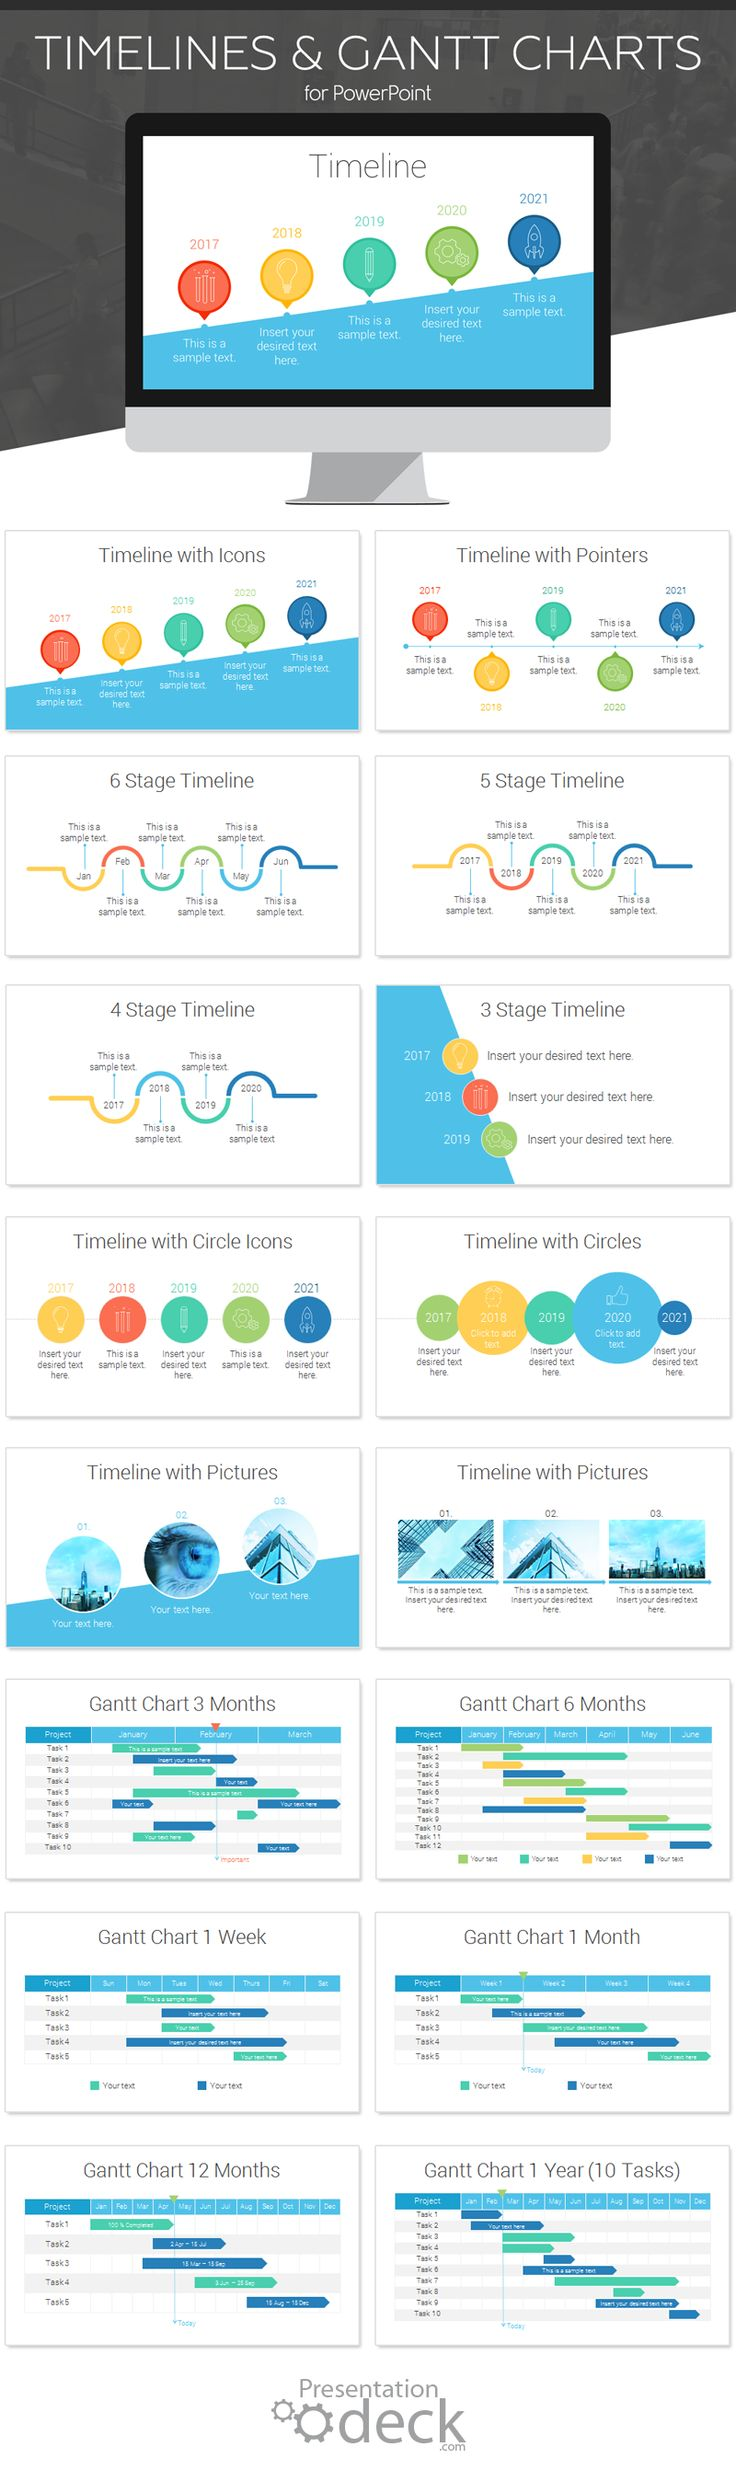 Timeline and Gantt chart toolkit for PowerPoint with 16 pre-designed slides. Create unlimited variations; you can modify shapes, text, and colors in the slide master view in PowerPoint.